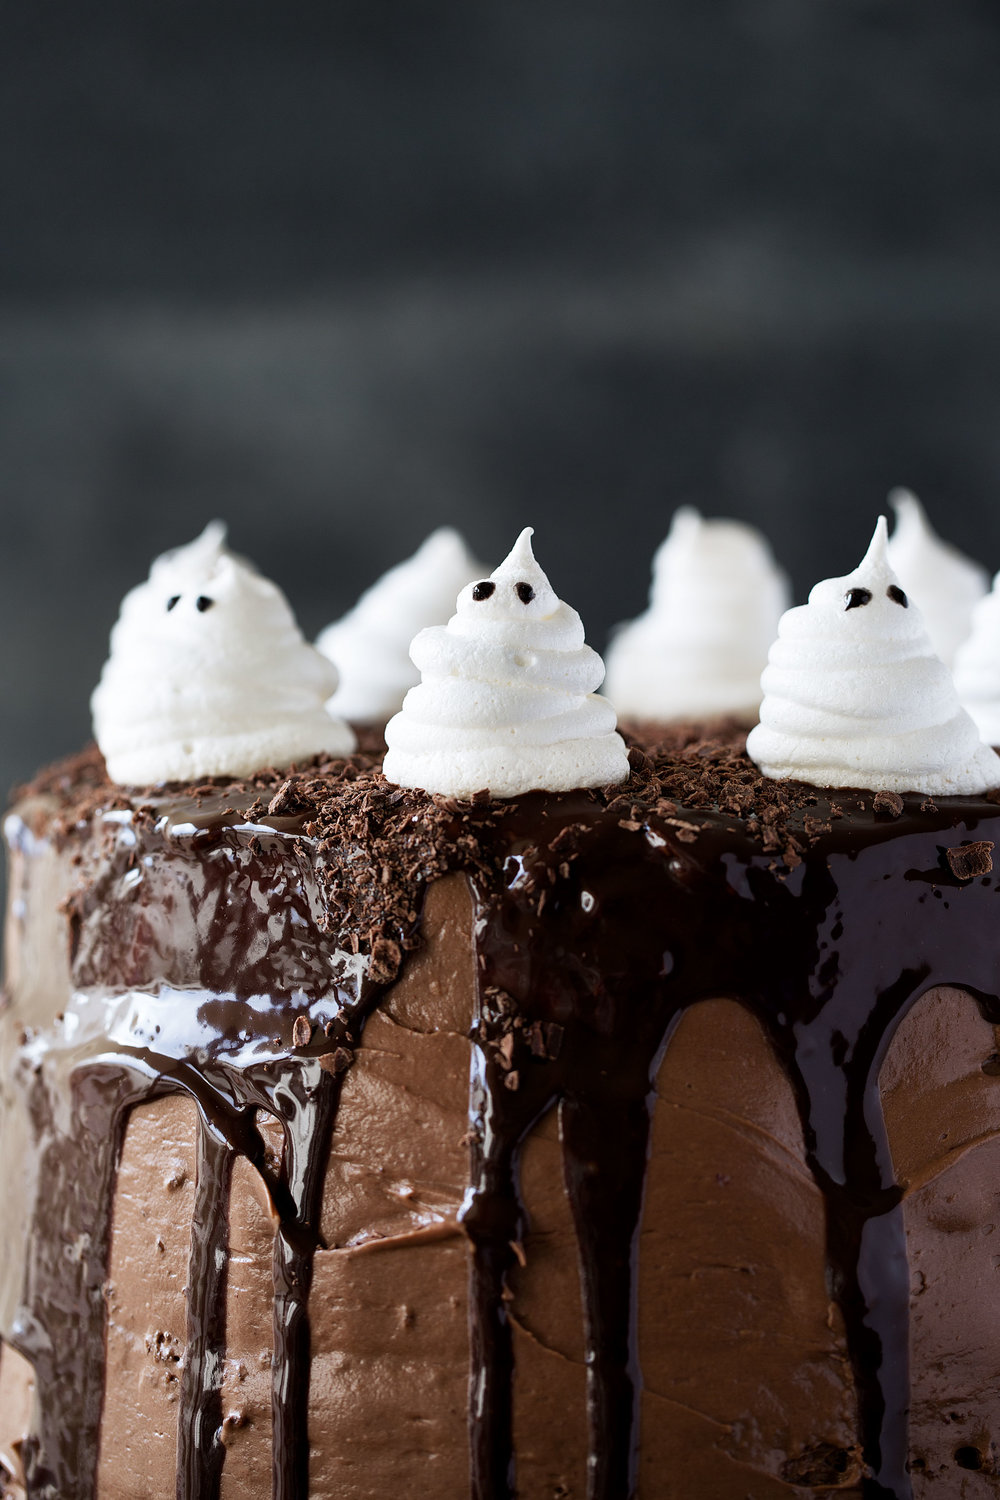 Dark Chocolate Cake with Raspberry Filling, Chocolate Ganache and Meringue Ghosts recipe from Cooking with Cocktail Rings